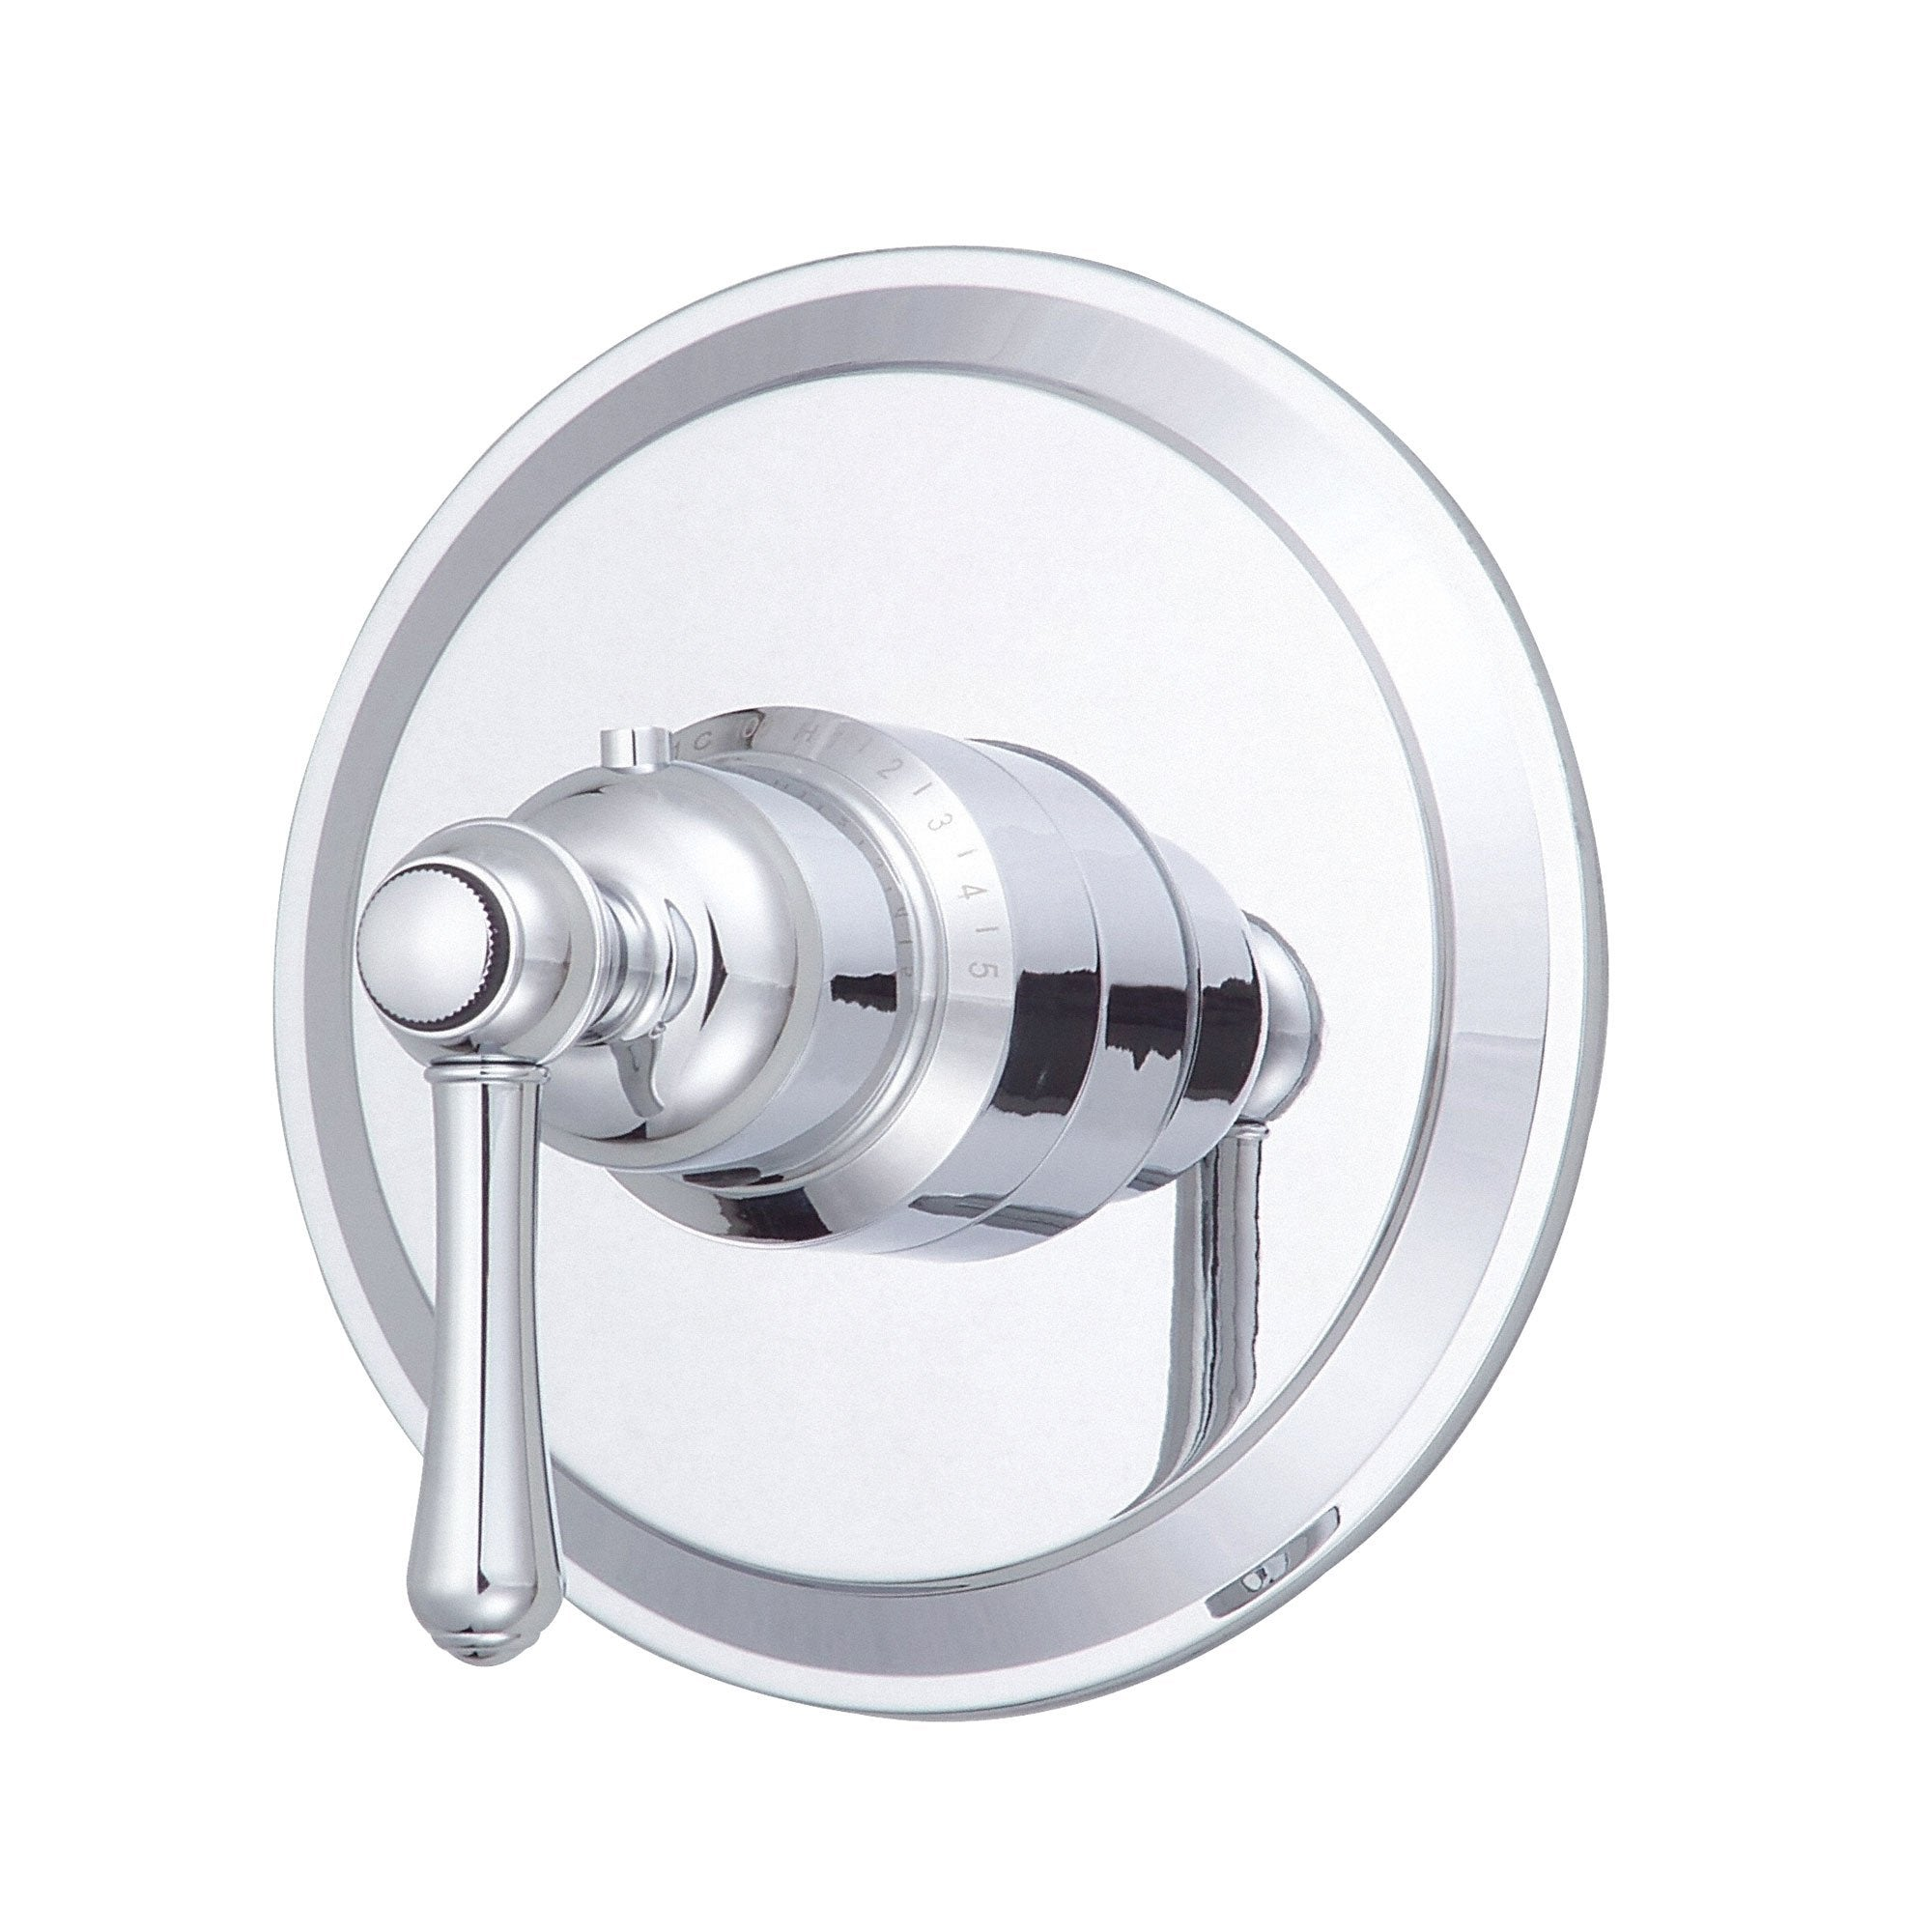 "Danze Opulence Chrome 1 Handle 3/4"" High-Volume Thermostatic Shower Control INCLUDES Rough-in Valve"